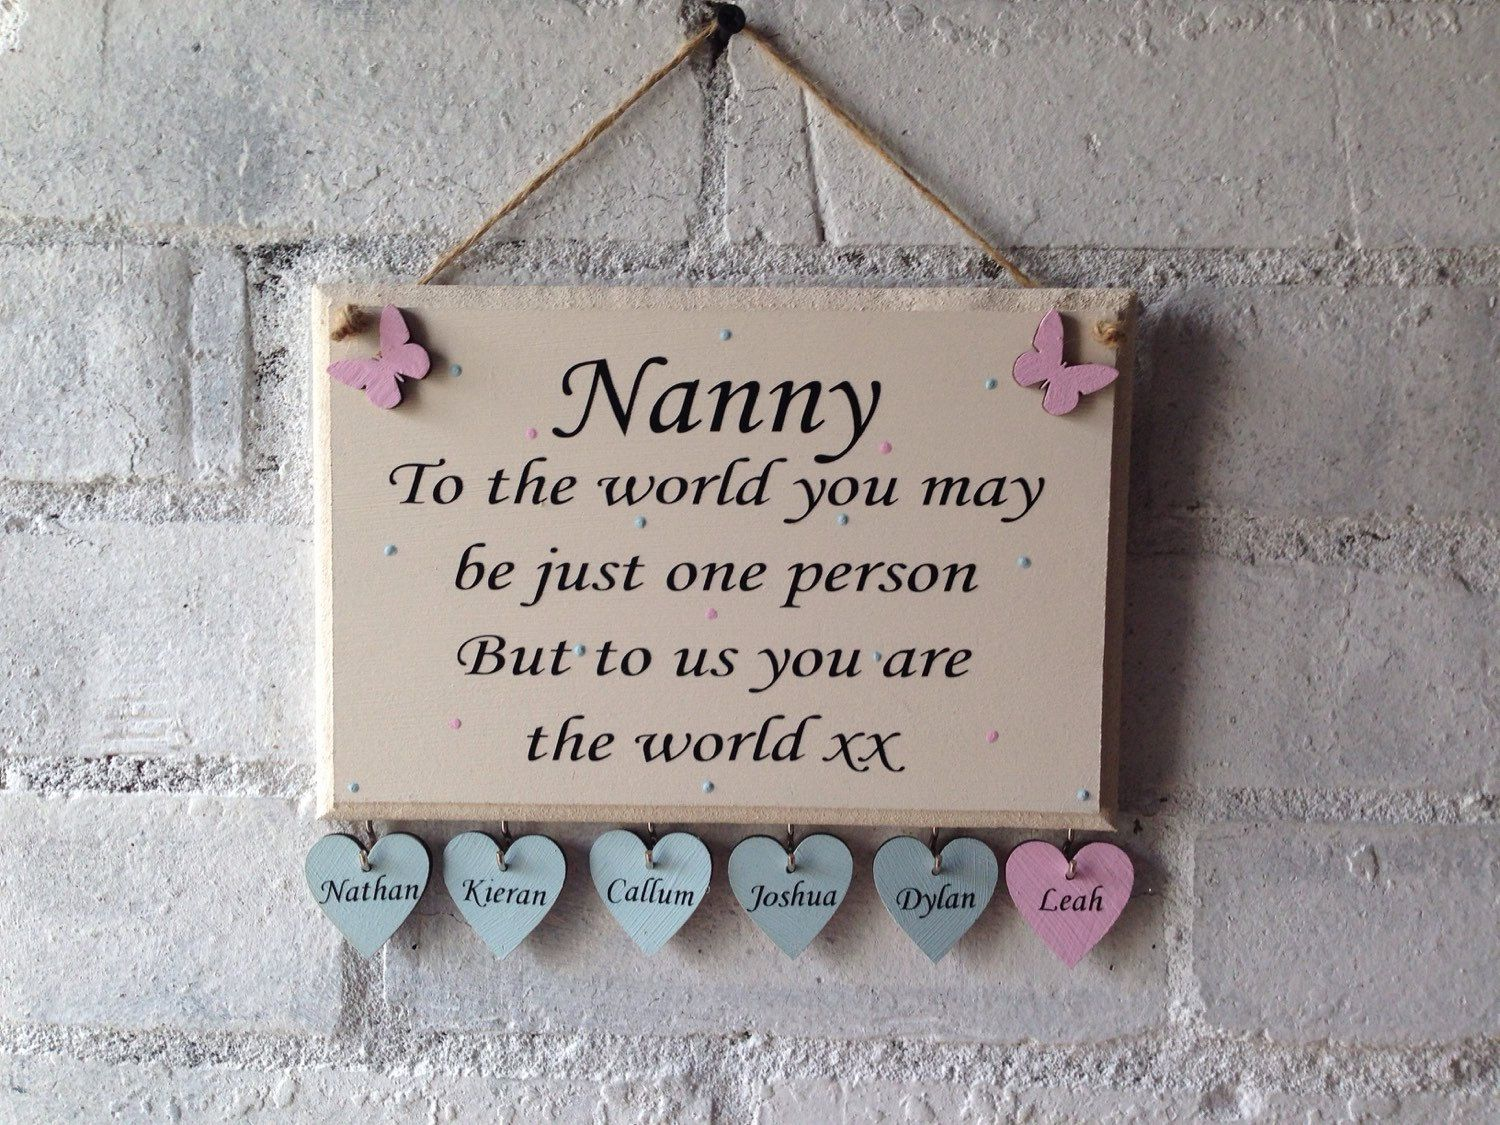 Nanny Quoted Wooden Sign Great For A Mothers Day Gift Wording Changed To Suit Gift For Grandma Personal Nanny Quotes Wooden Signs With Sayings Wooden Signs